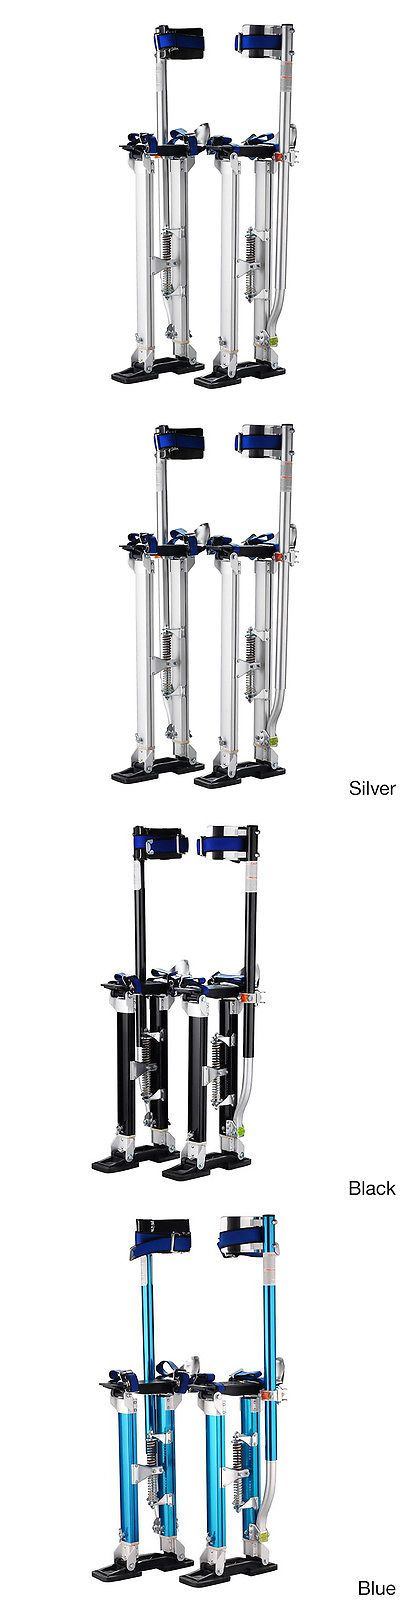 Other Home Improvement Tools 11704: Pentagon Tool Professional 24 Inch To 40 Inch Aluminum Drywall Stilts -> BUY IT NOW ONLY: $102.99 on eBay!